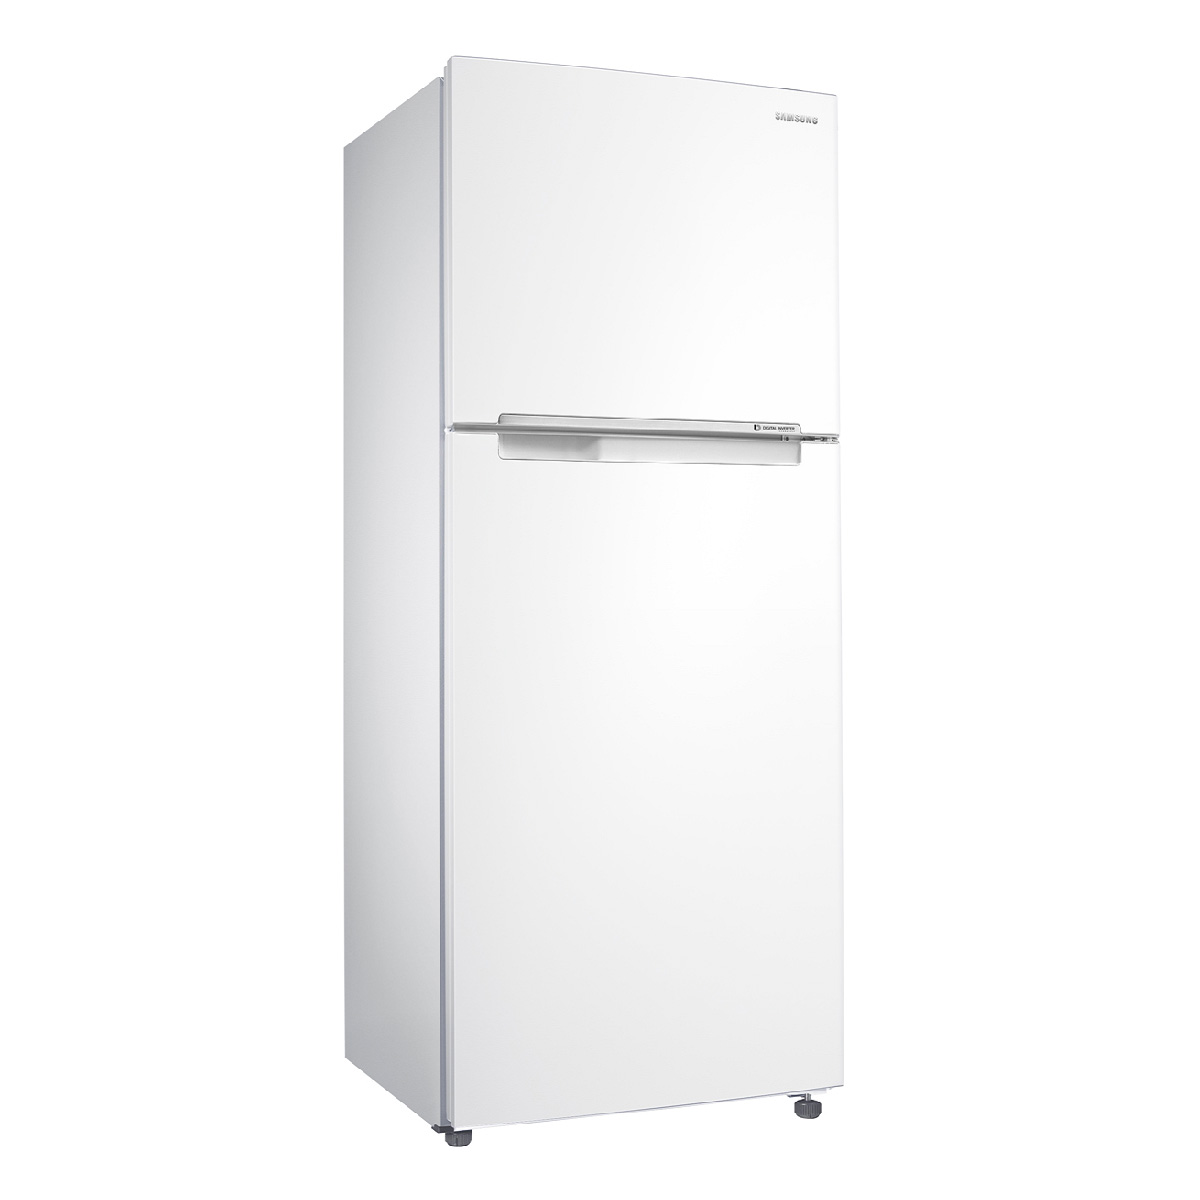 Samsung SR399WTC 400L Top Mount Fridge with Twin Cooling Plus 35345